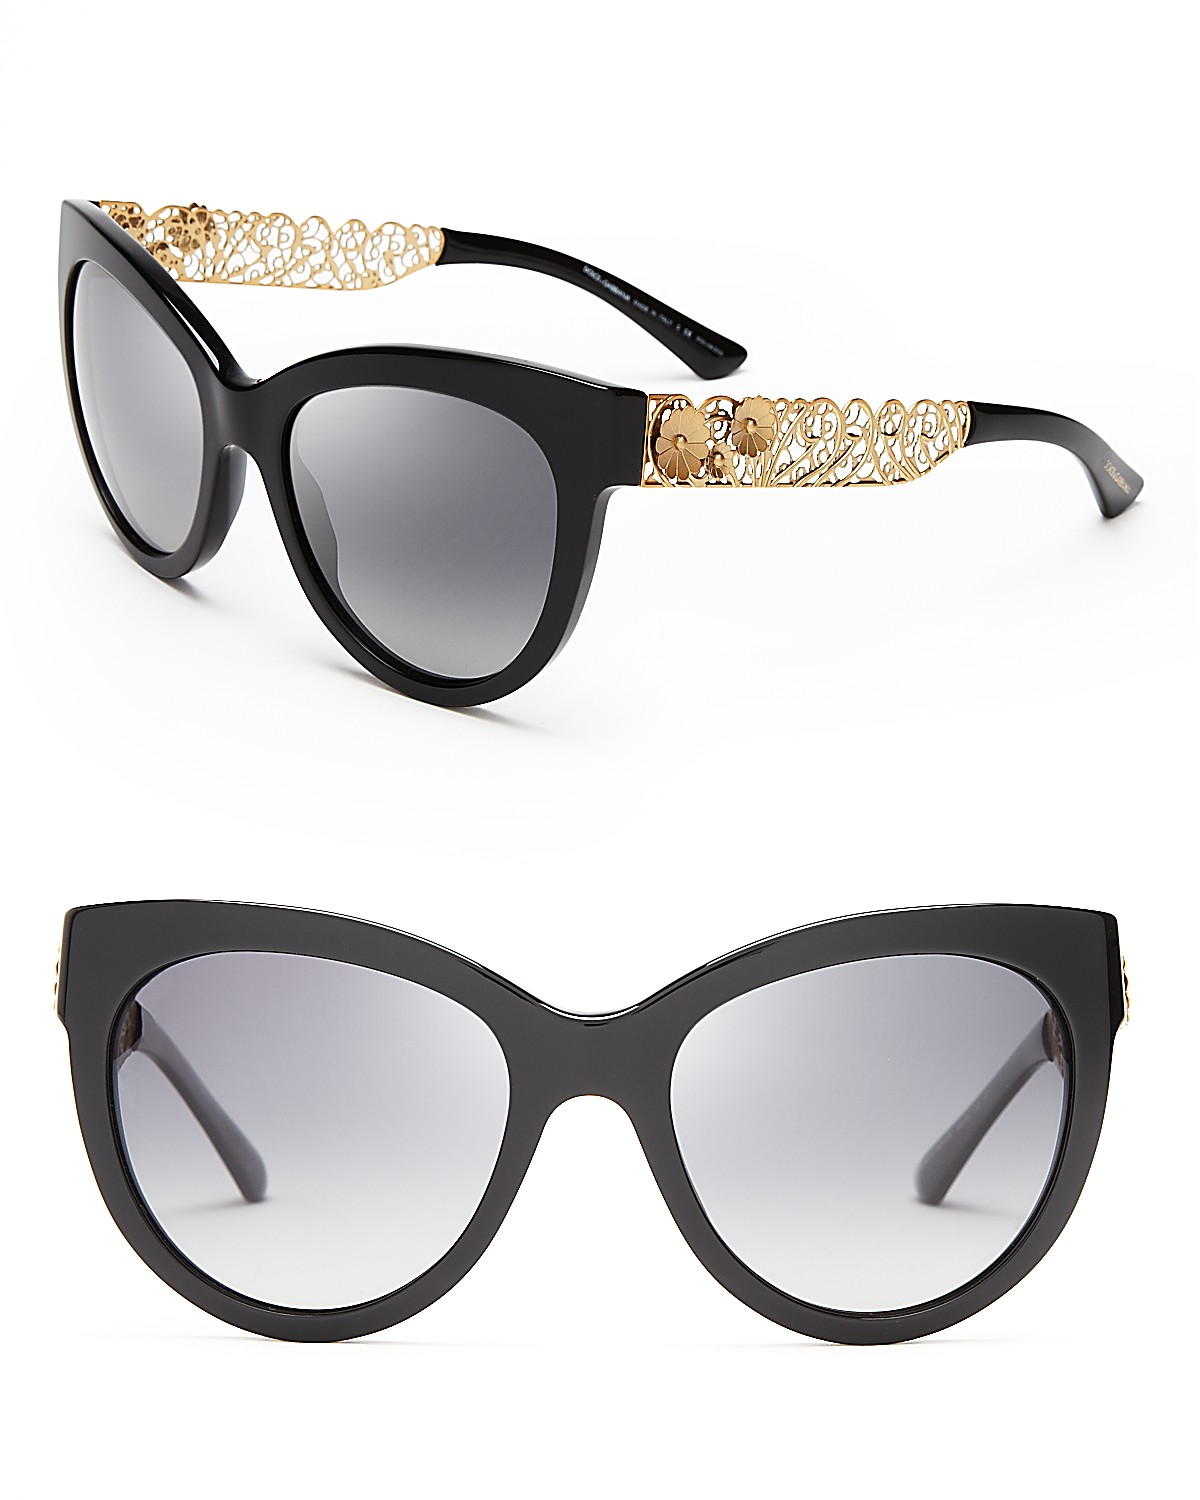 Dolce&Gabbana Polarized Cat Eye Floral Filigree Sunglasses | Bloomingdale's